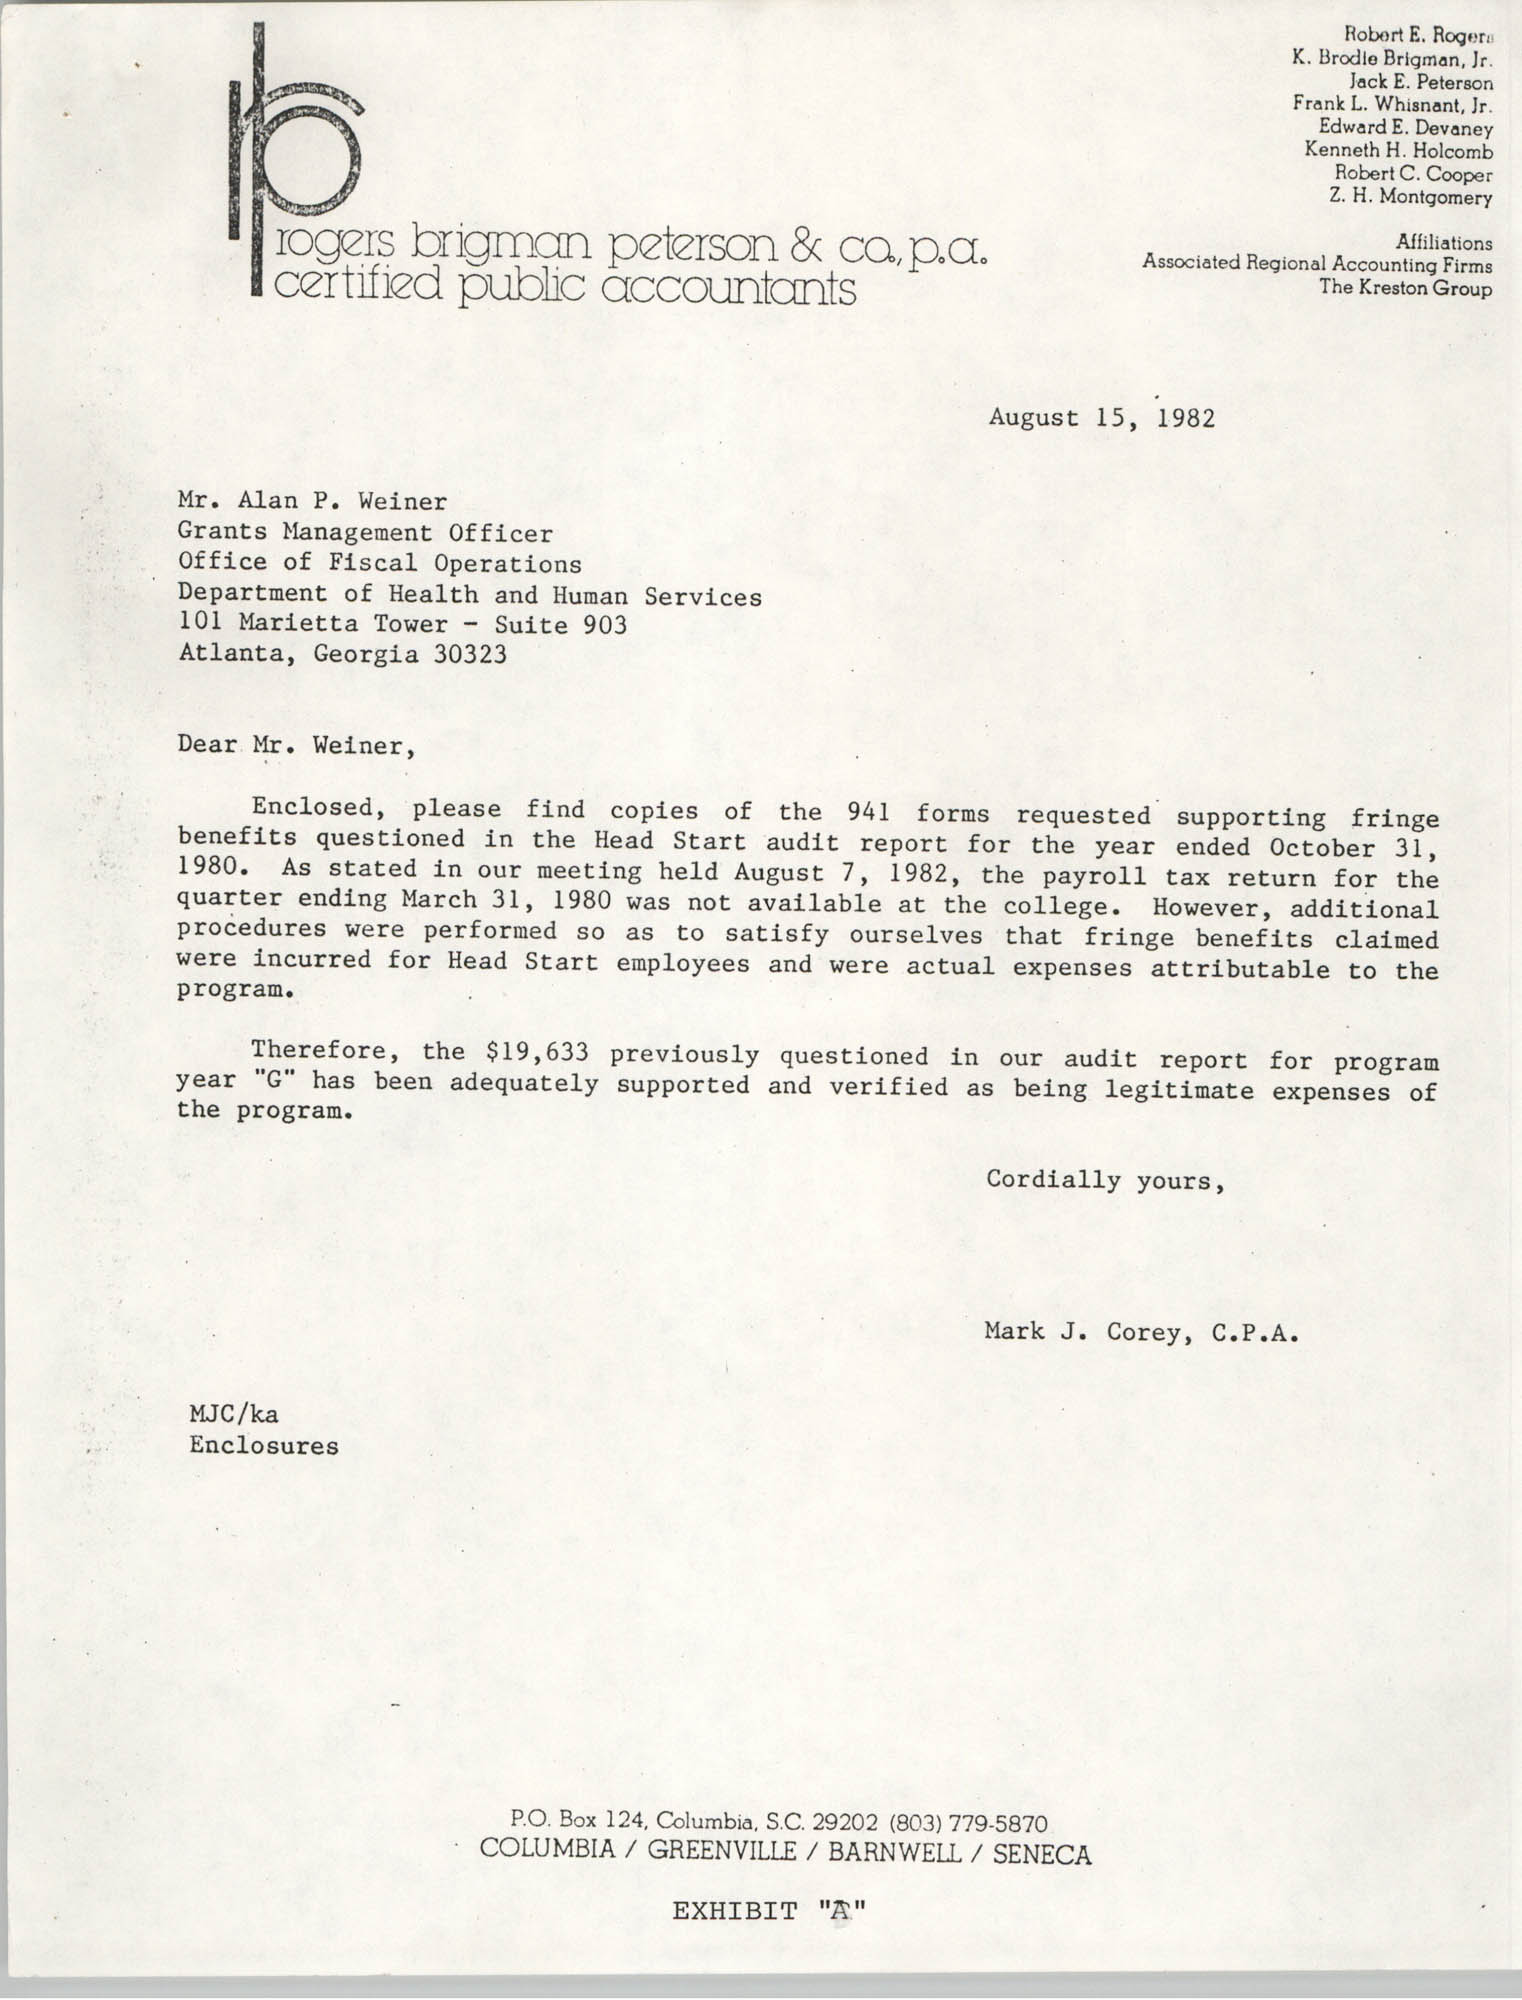 Letter from Mark J. Corey to Alan P. Weiner, August 15, 1982